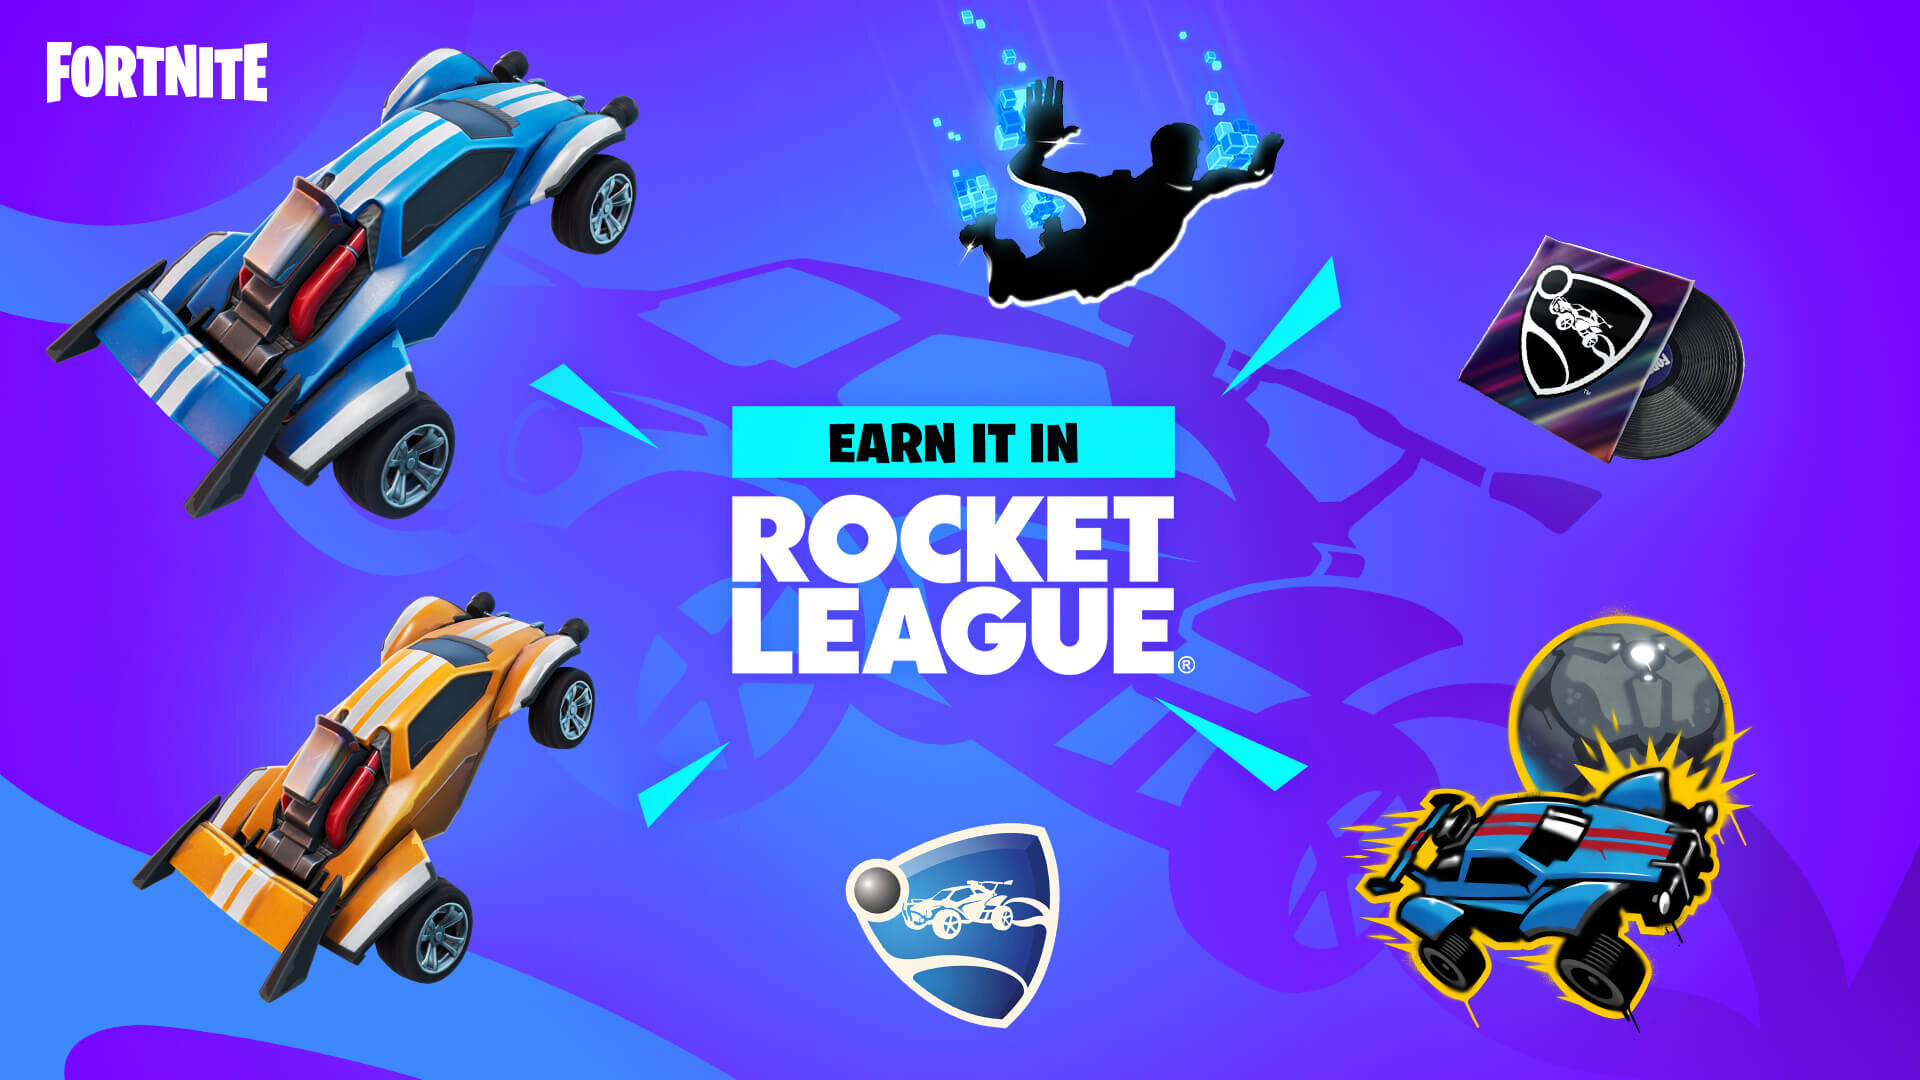 rocket-league-fortnite-challenges-and-rewards-1920x1080-072433019.jpg